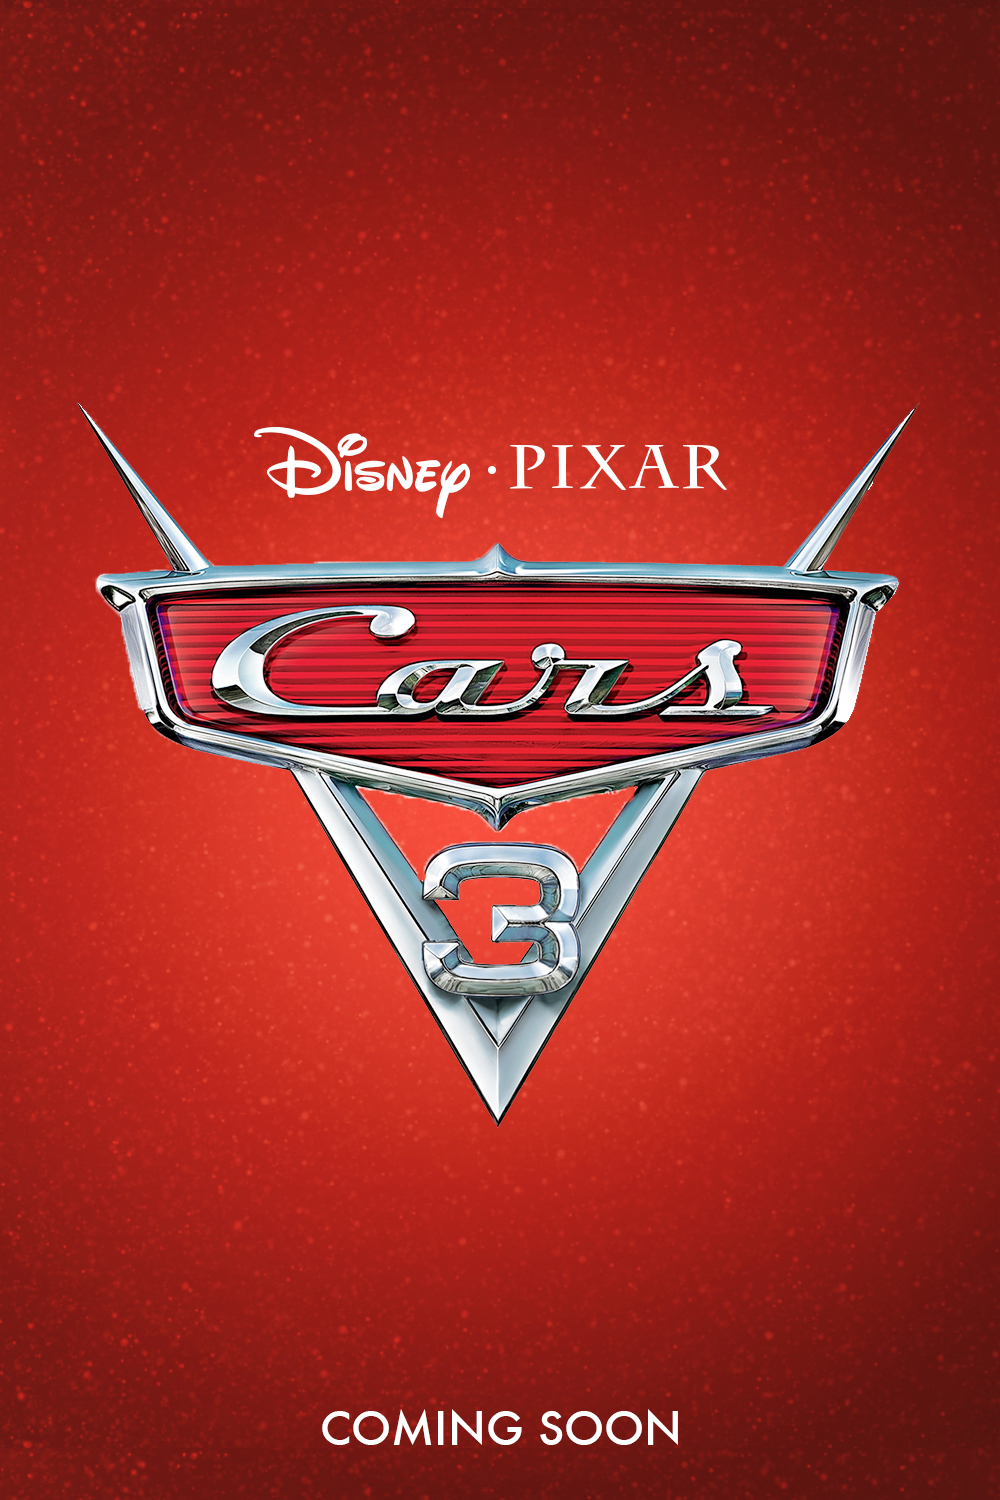 Cars 3 release date in Perth